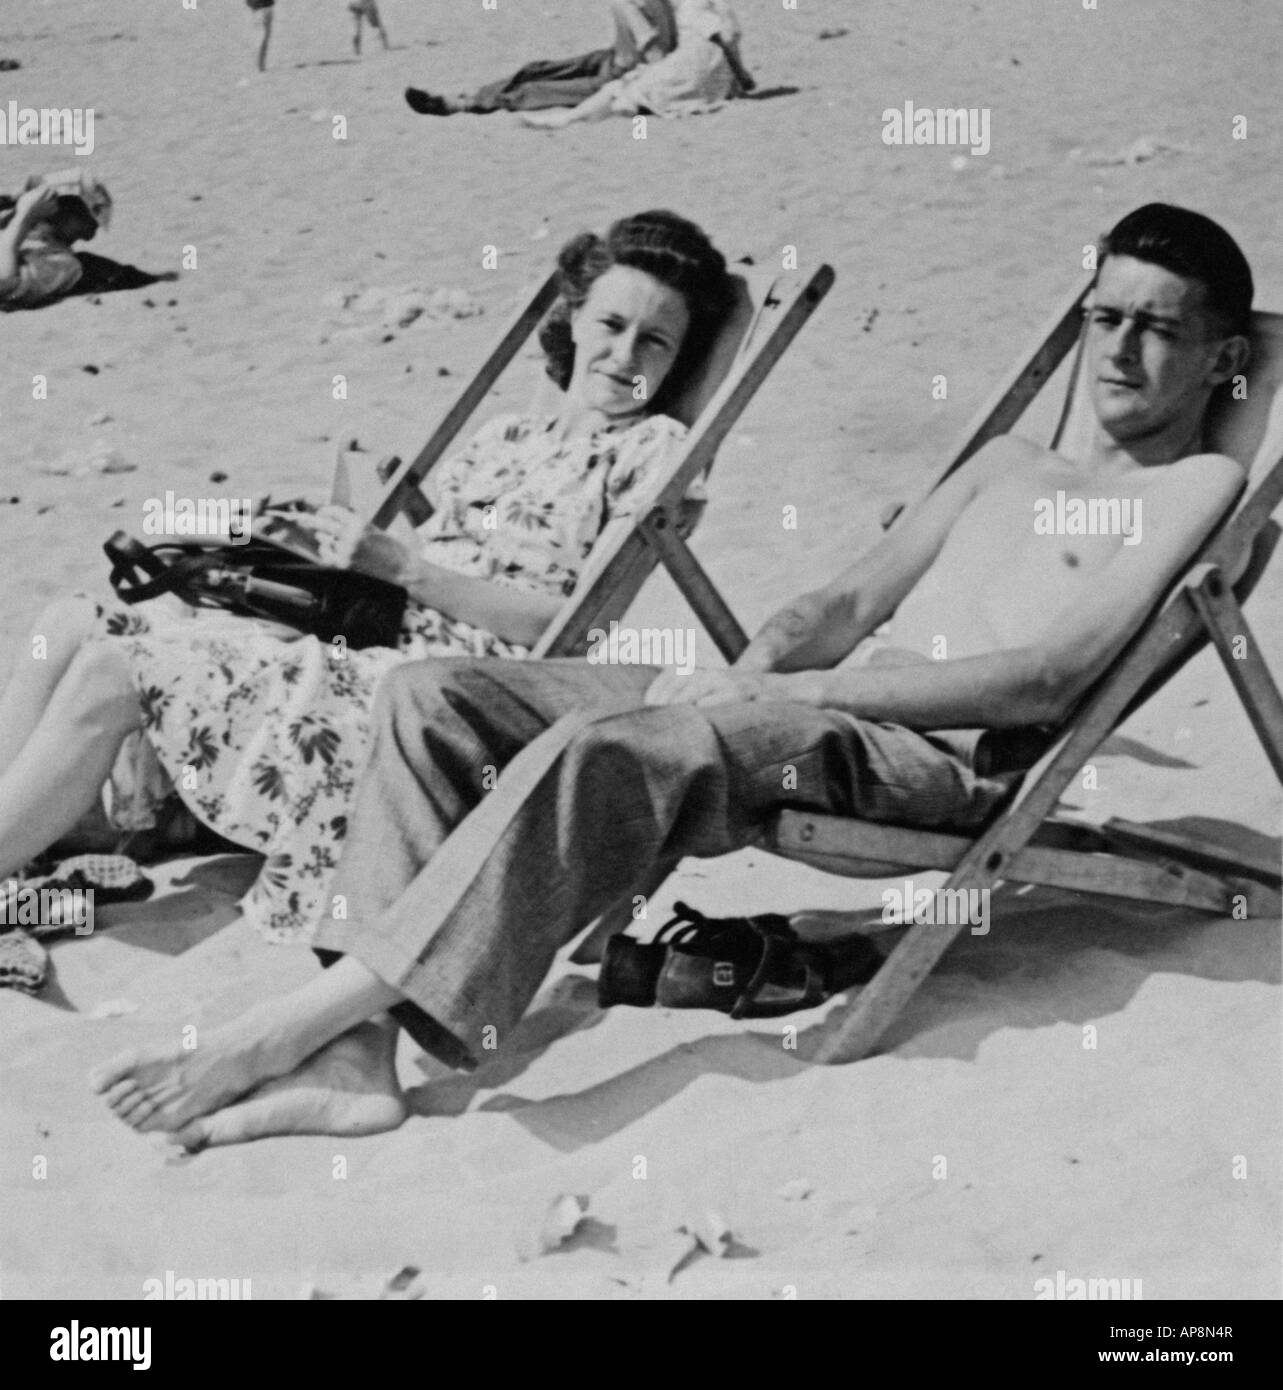 Old black and white family photography snap shot of couple sitting in deck chairs on beach